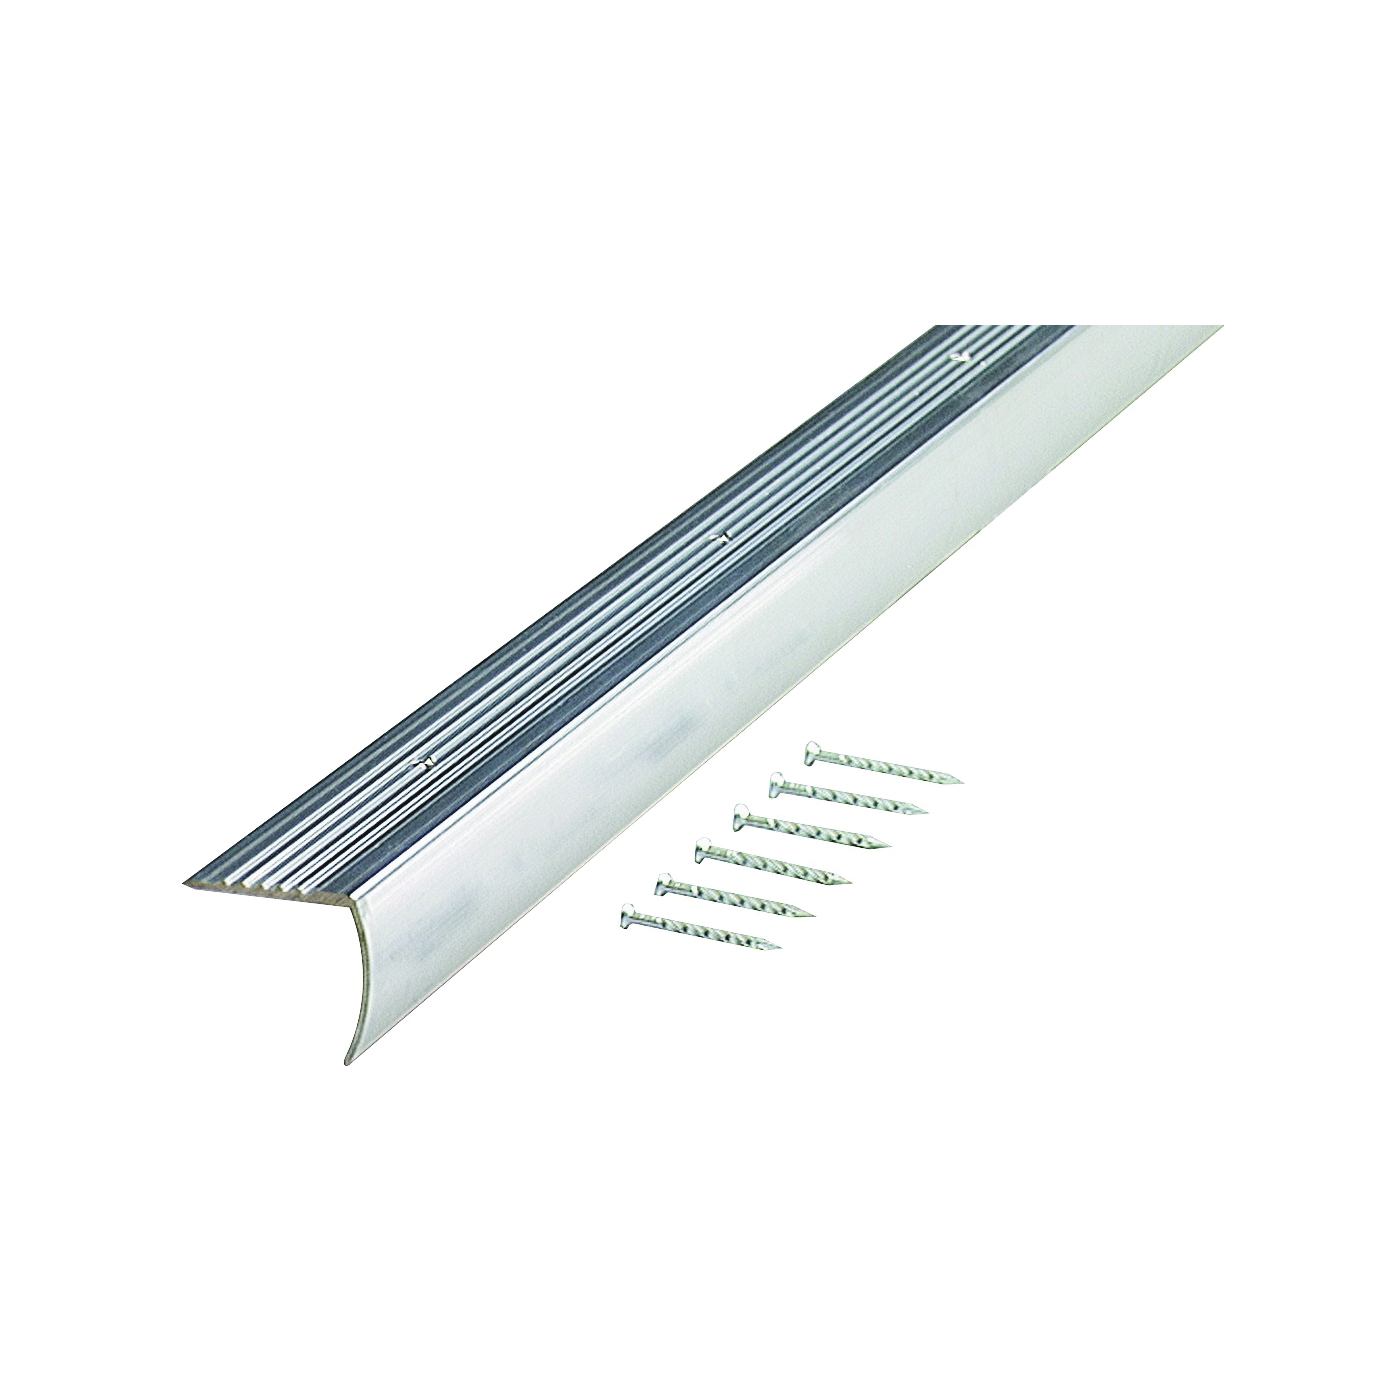 Picture of M-D 66266 Stair Edging, 75 in L, 1.28 in W, Aluminum